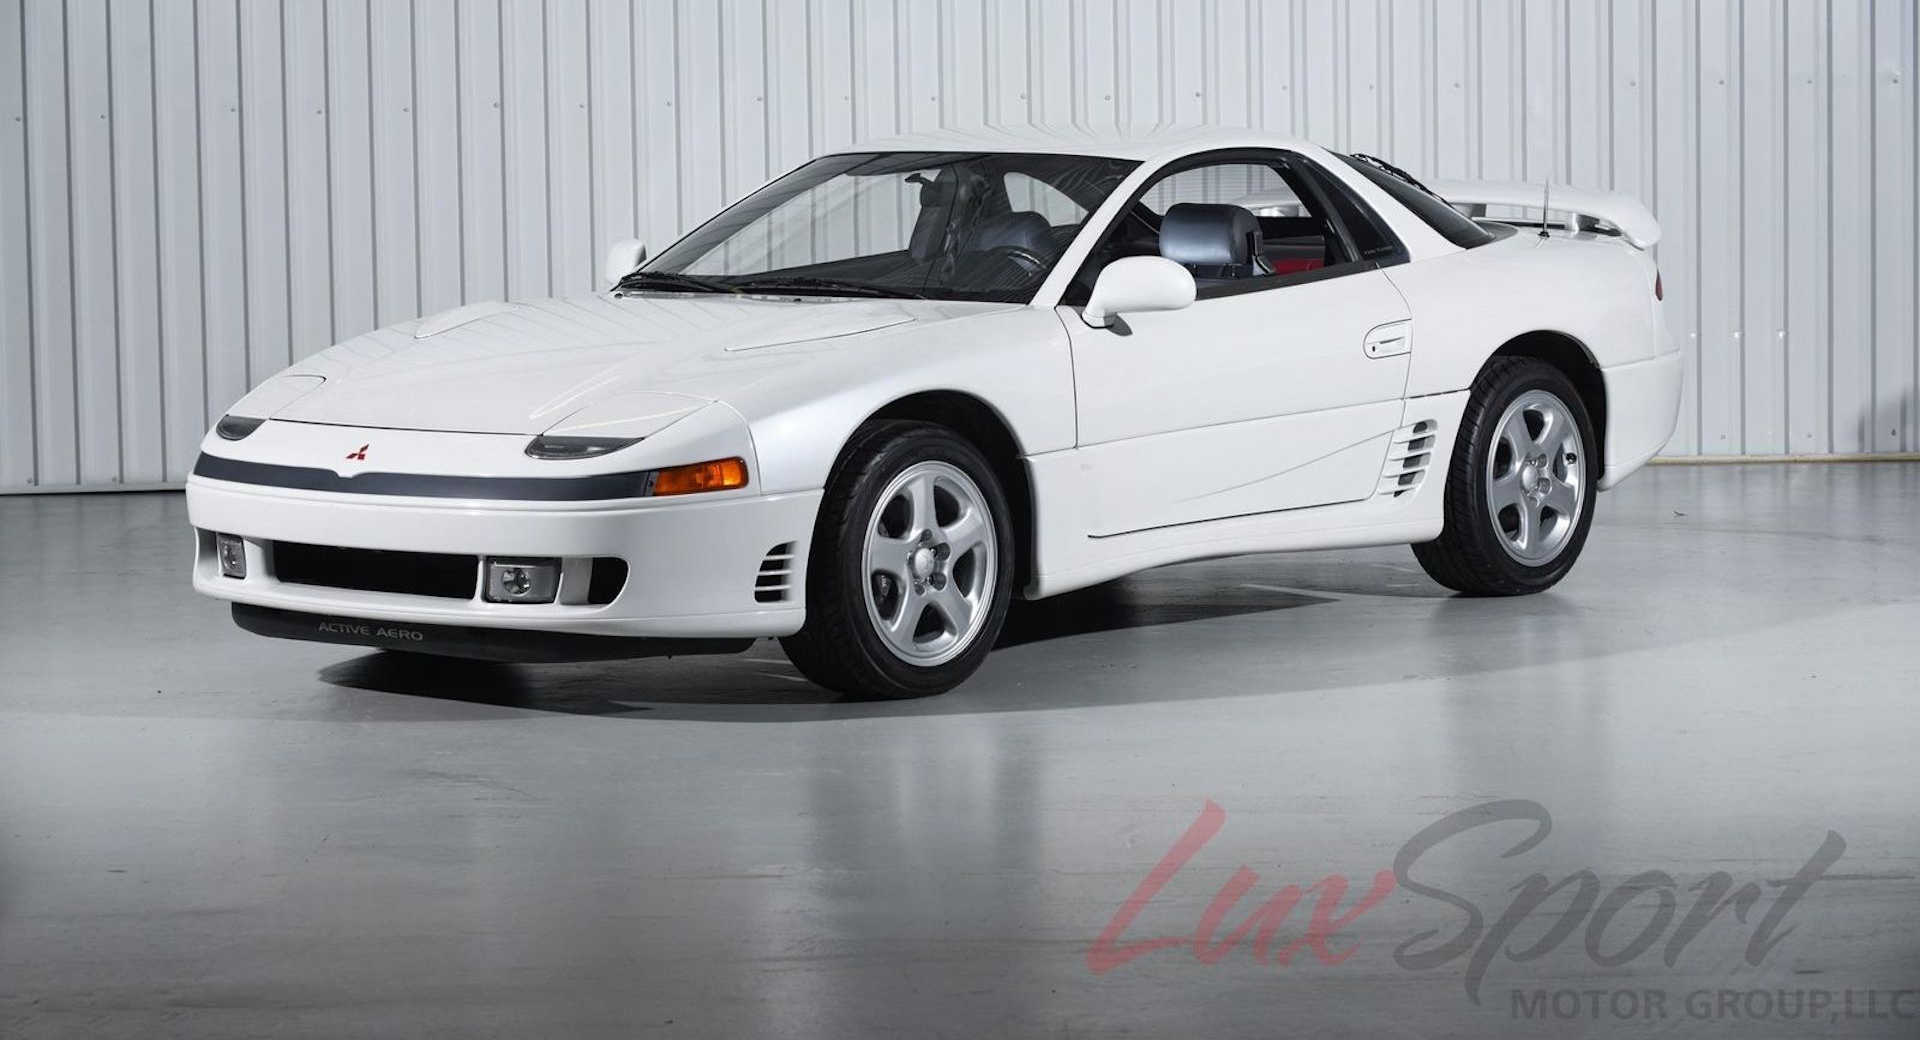 mint 1991 mitsubishi 3000gt vr 4 brims with high tech but is it worth 50k carscoops. Black Bedroom Furniture Sets. Home Design Ideas